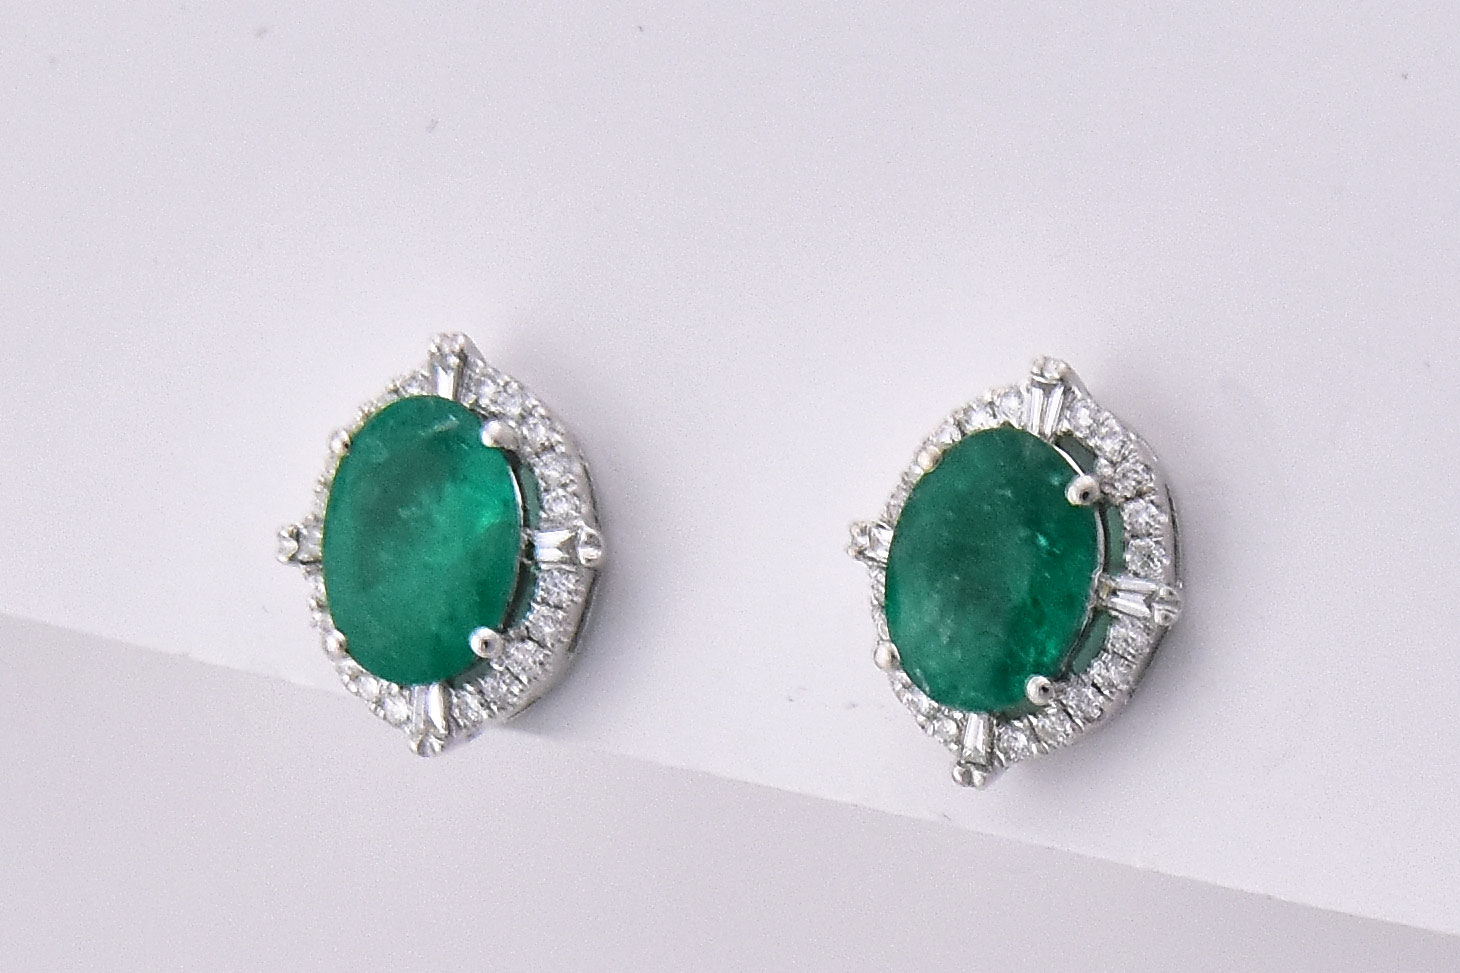 Over 1.50 Carats Emerald Earrings In White Gold